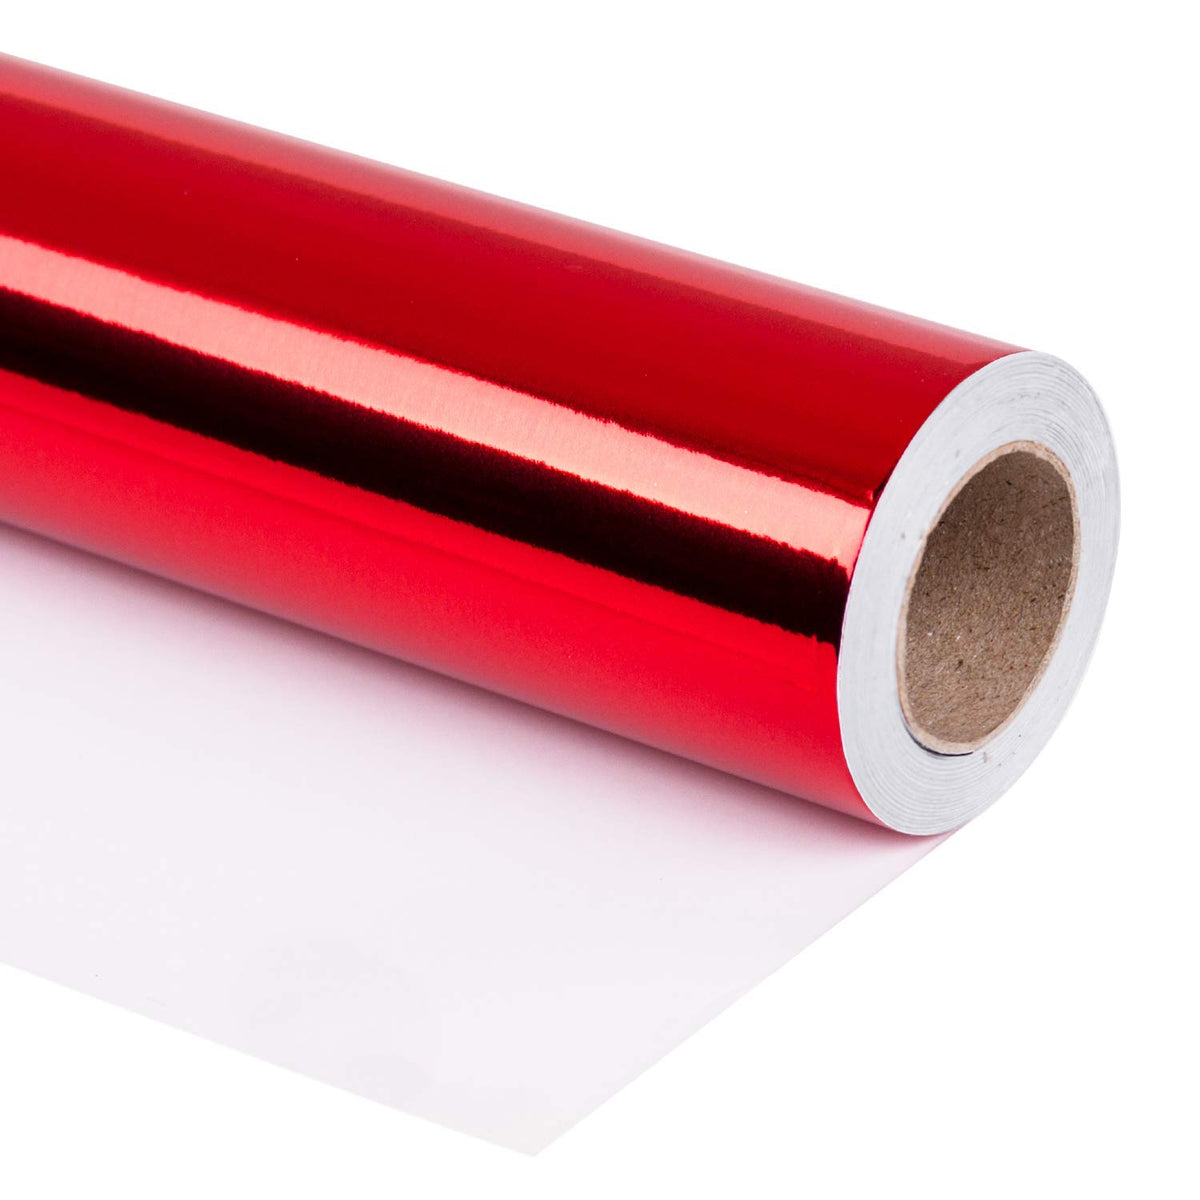 wrapaholic-glossy-matalic-red-gift-wrapping-paper-2